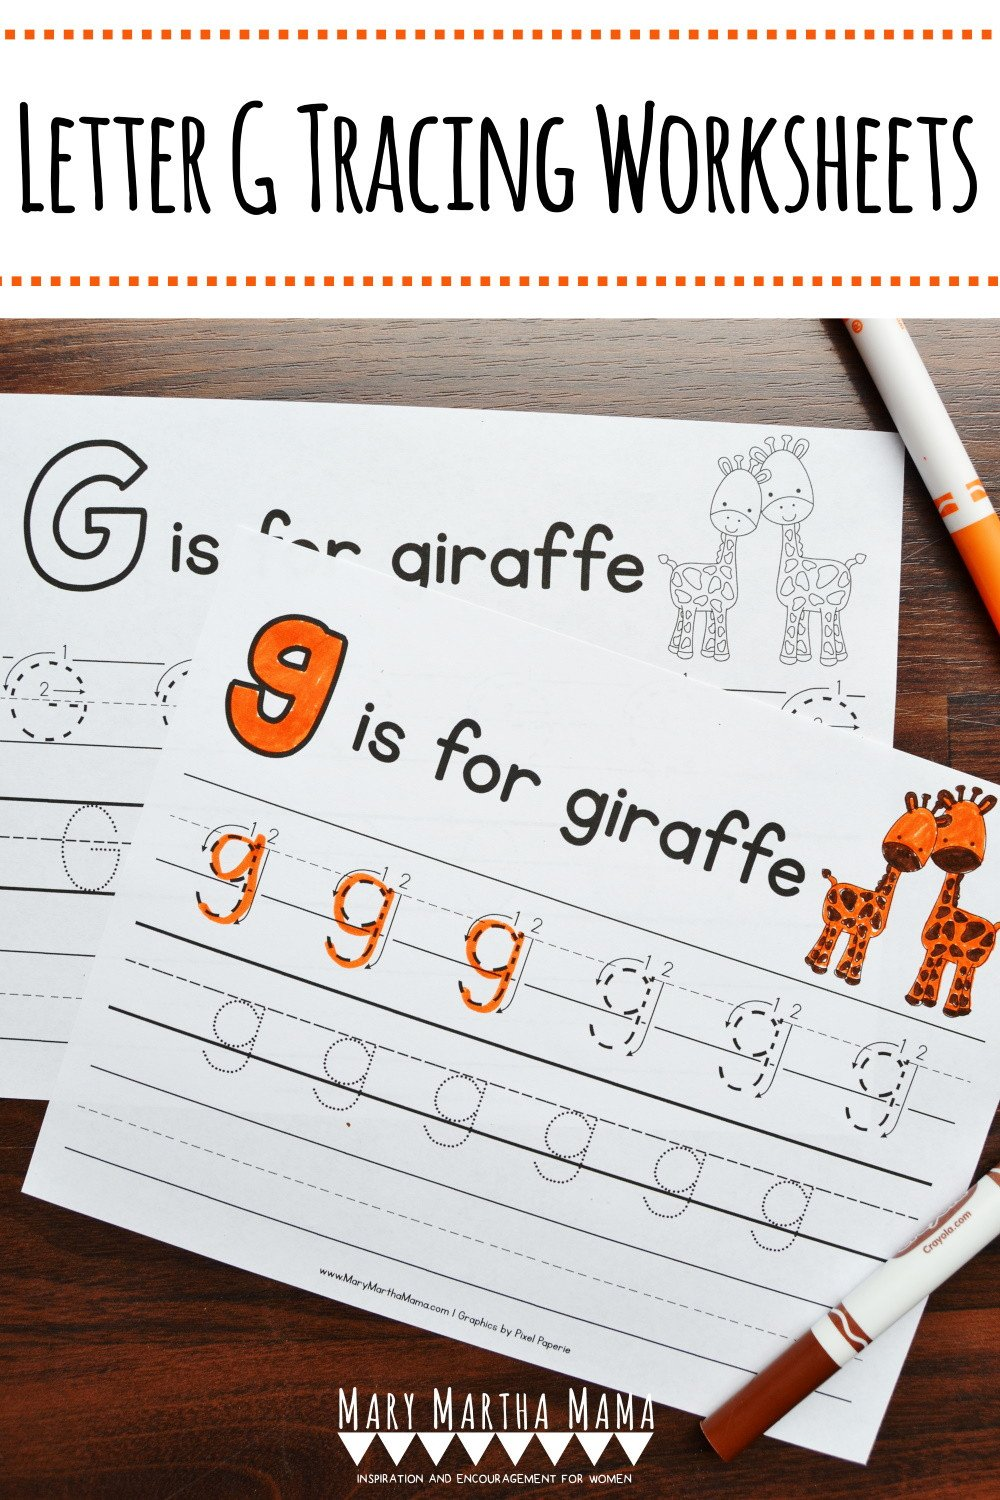 Letter G Tracing Worksheet Letter G Tracing Worksheets – Mary Martha Mama